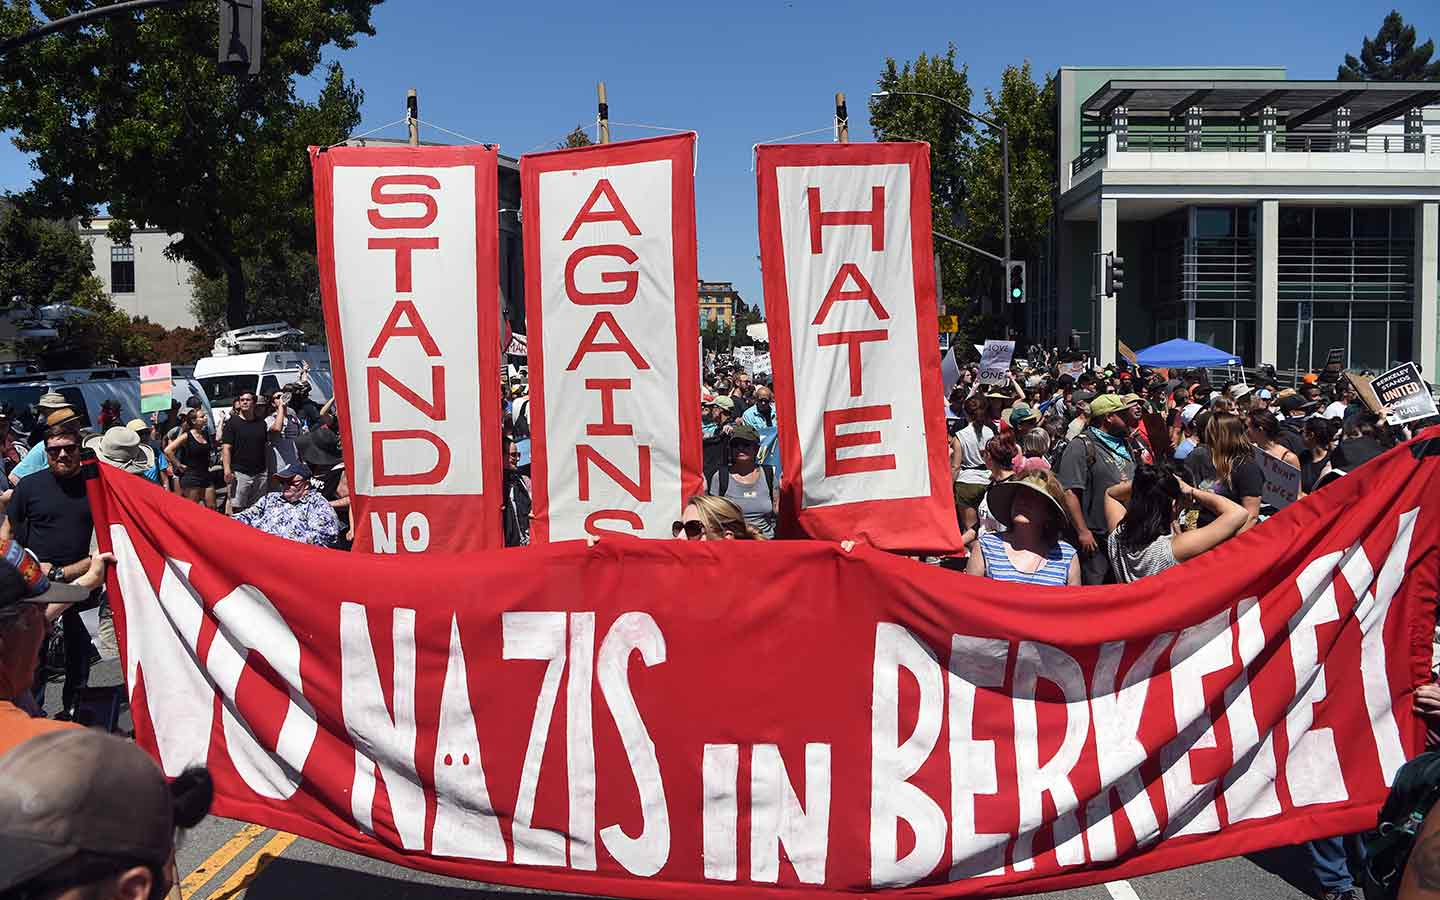 berkeley rally against hate